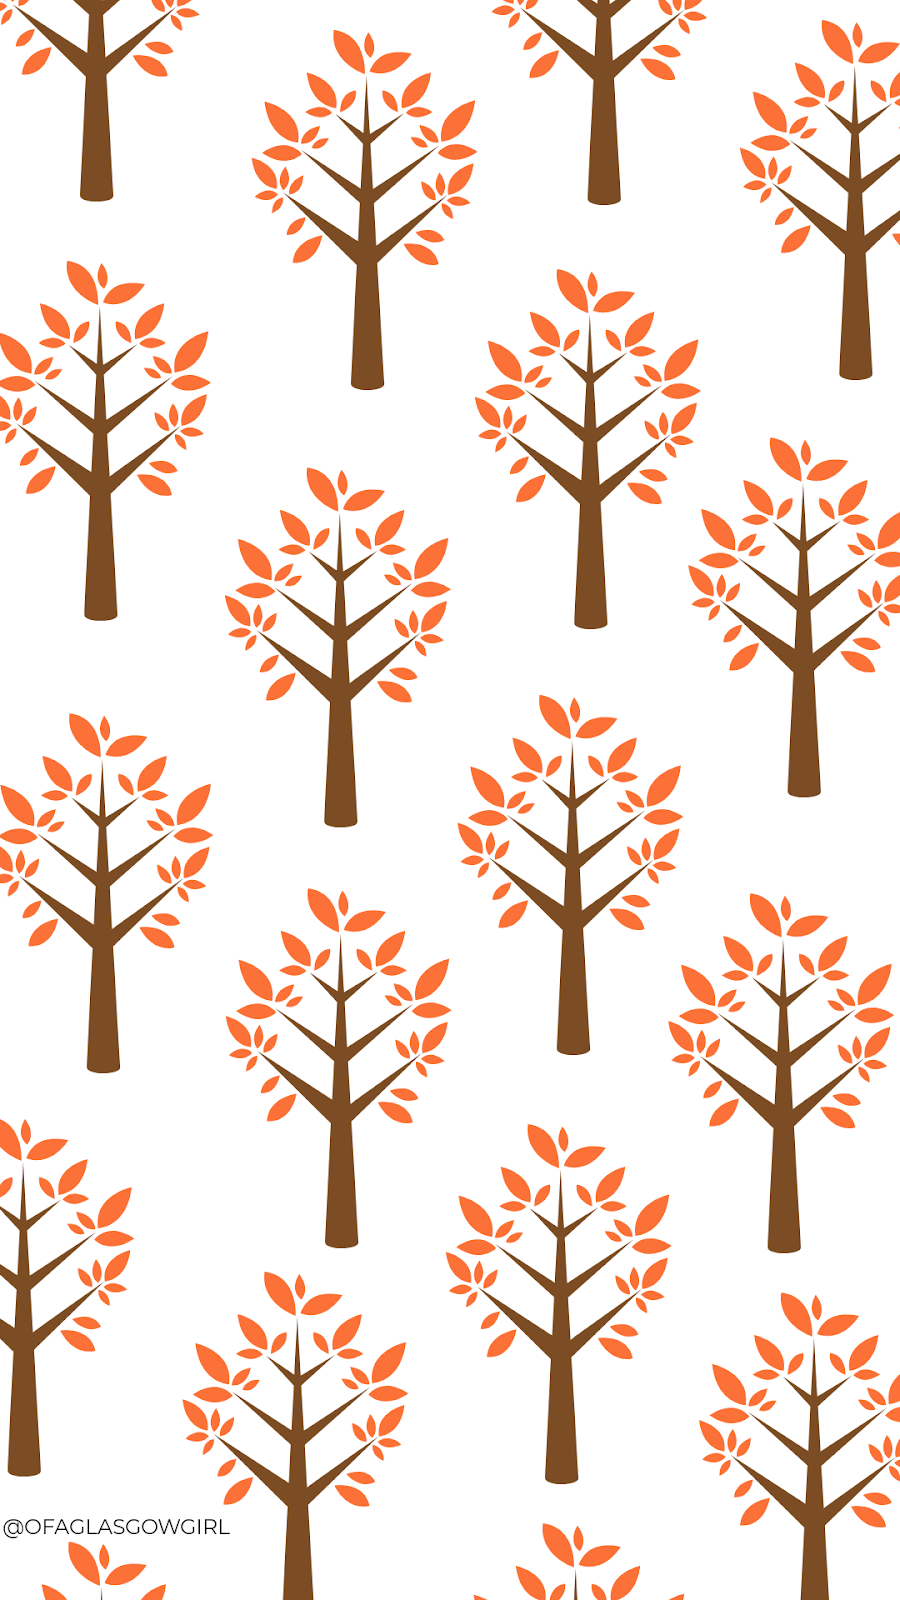 Autumn phone wallpaper or instagram template with a repeated pattern of trees on it.